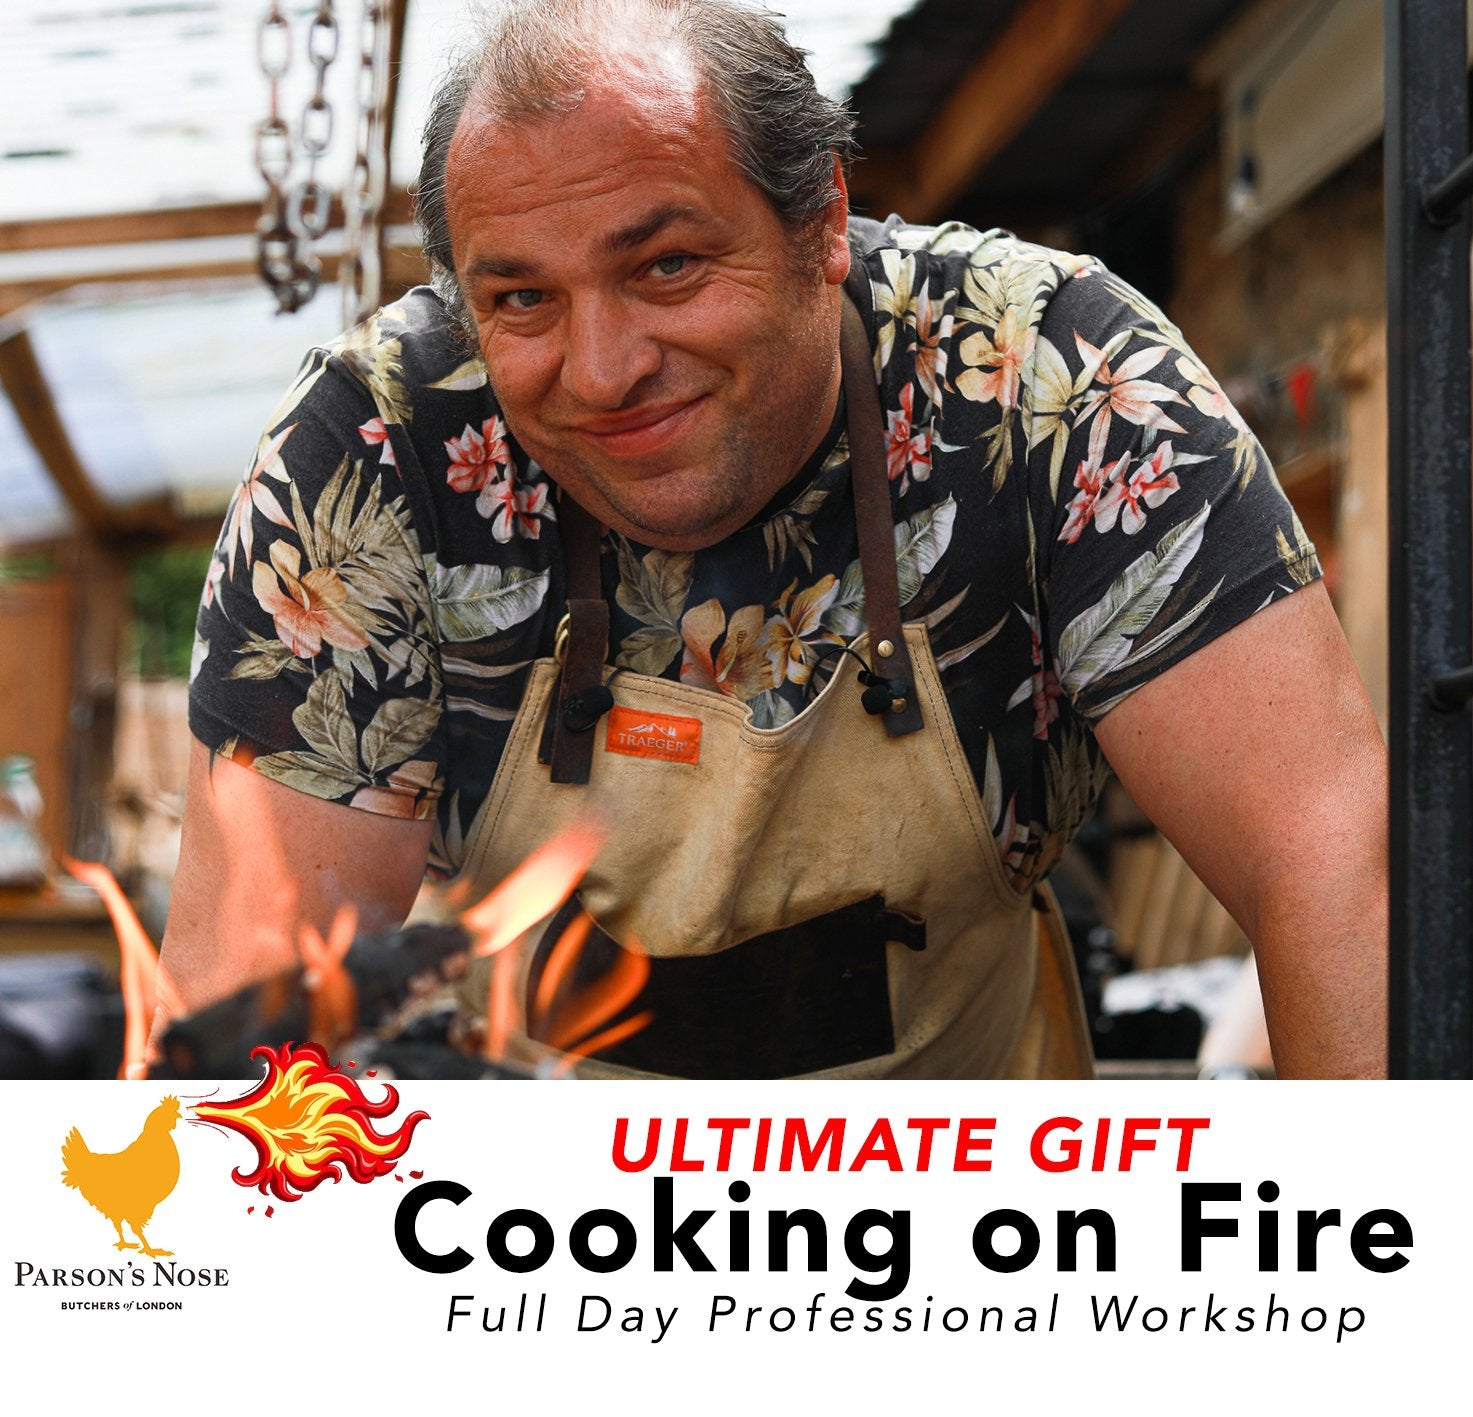 Cooking on Fire Ultimate Workshop for sale - Parson's Nose